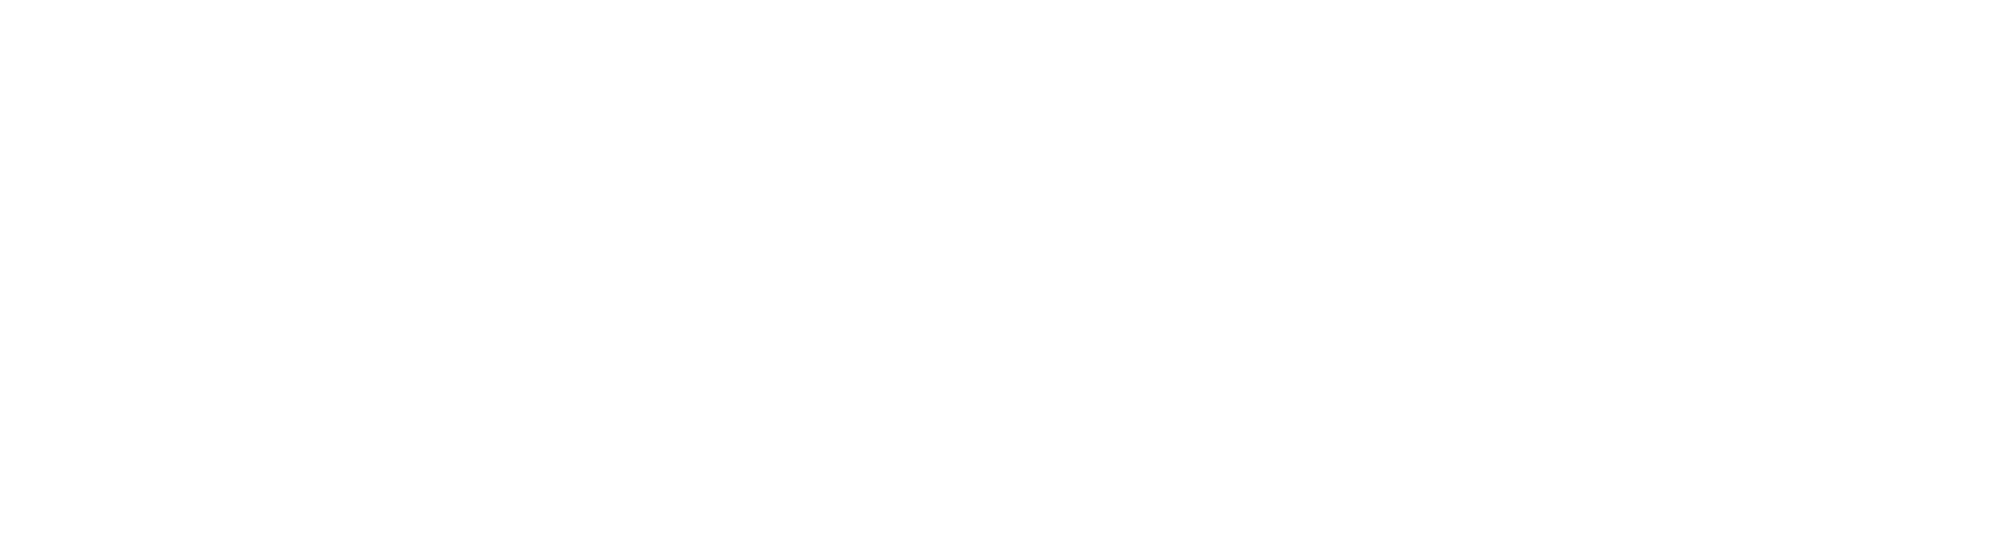 Introducing The RH Members Program. What you want, When you want, Always at 25% savings. On everything RH.